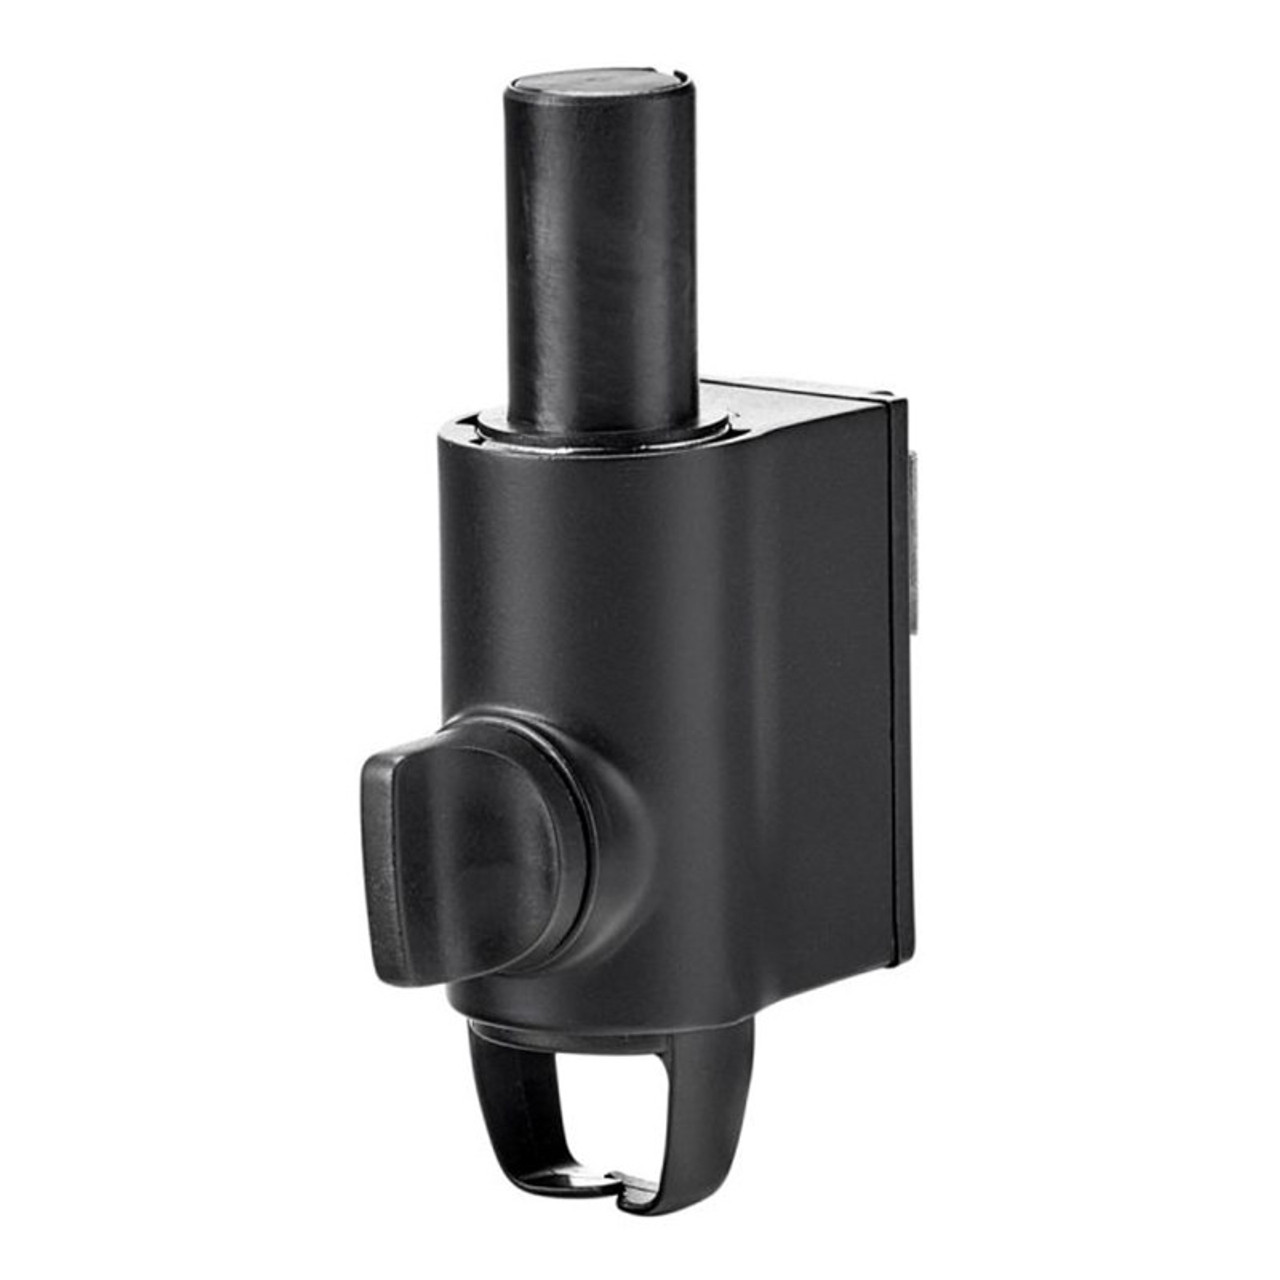 Image for Atdec AWM-LC Post/Wall Channel Clamp for AWM-AD - Black CX Computer Superstore